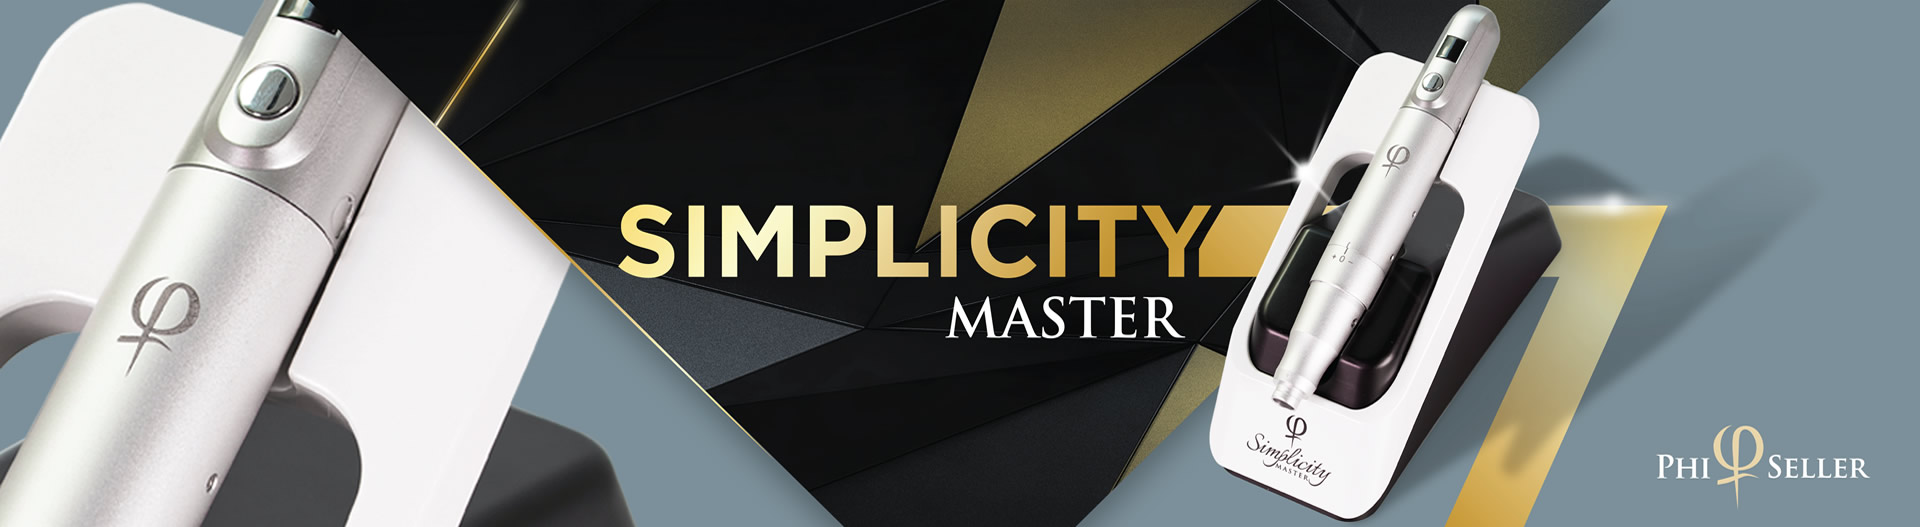 Simplicity Master